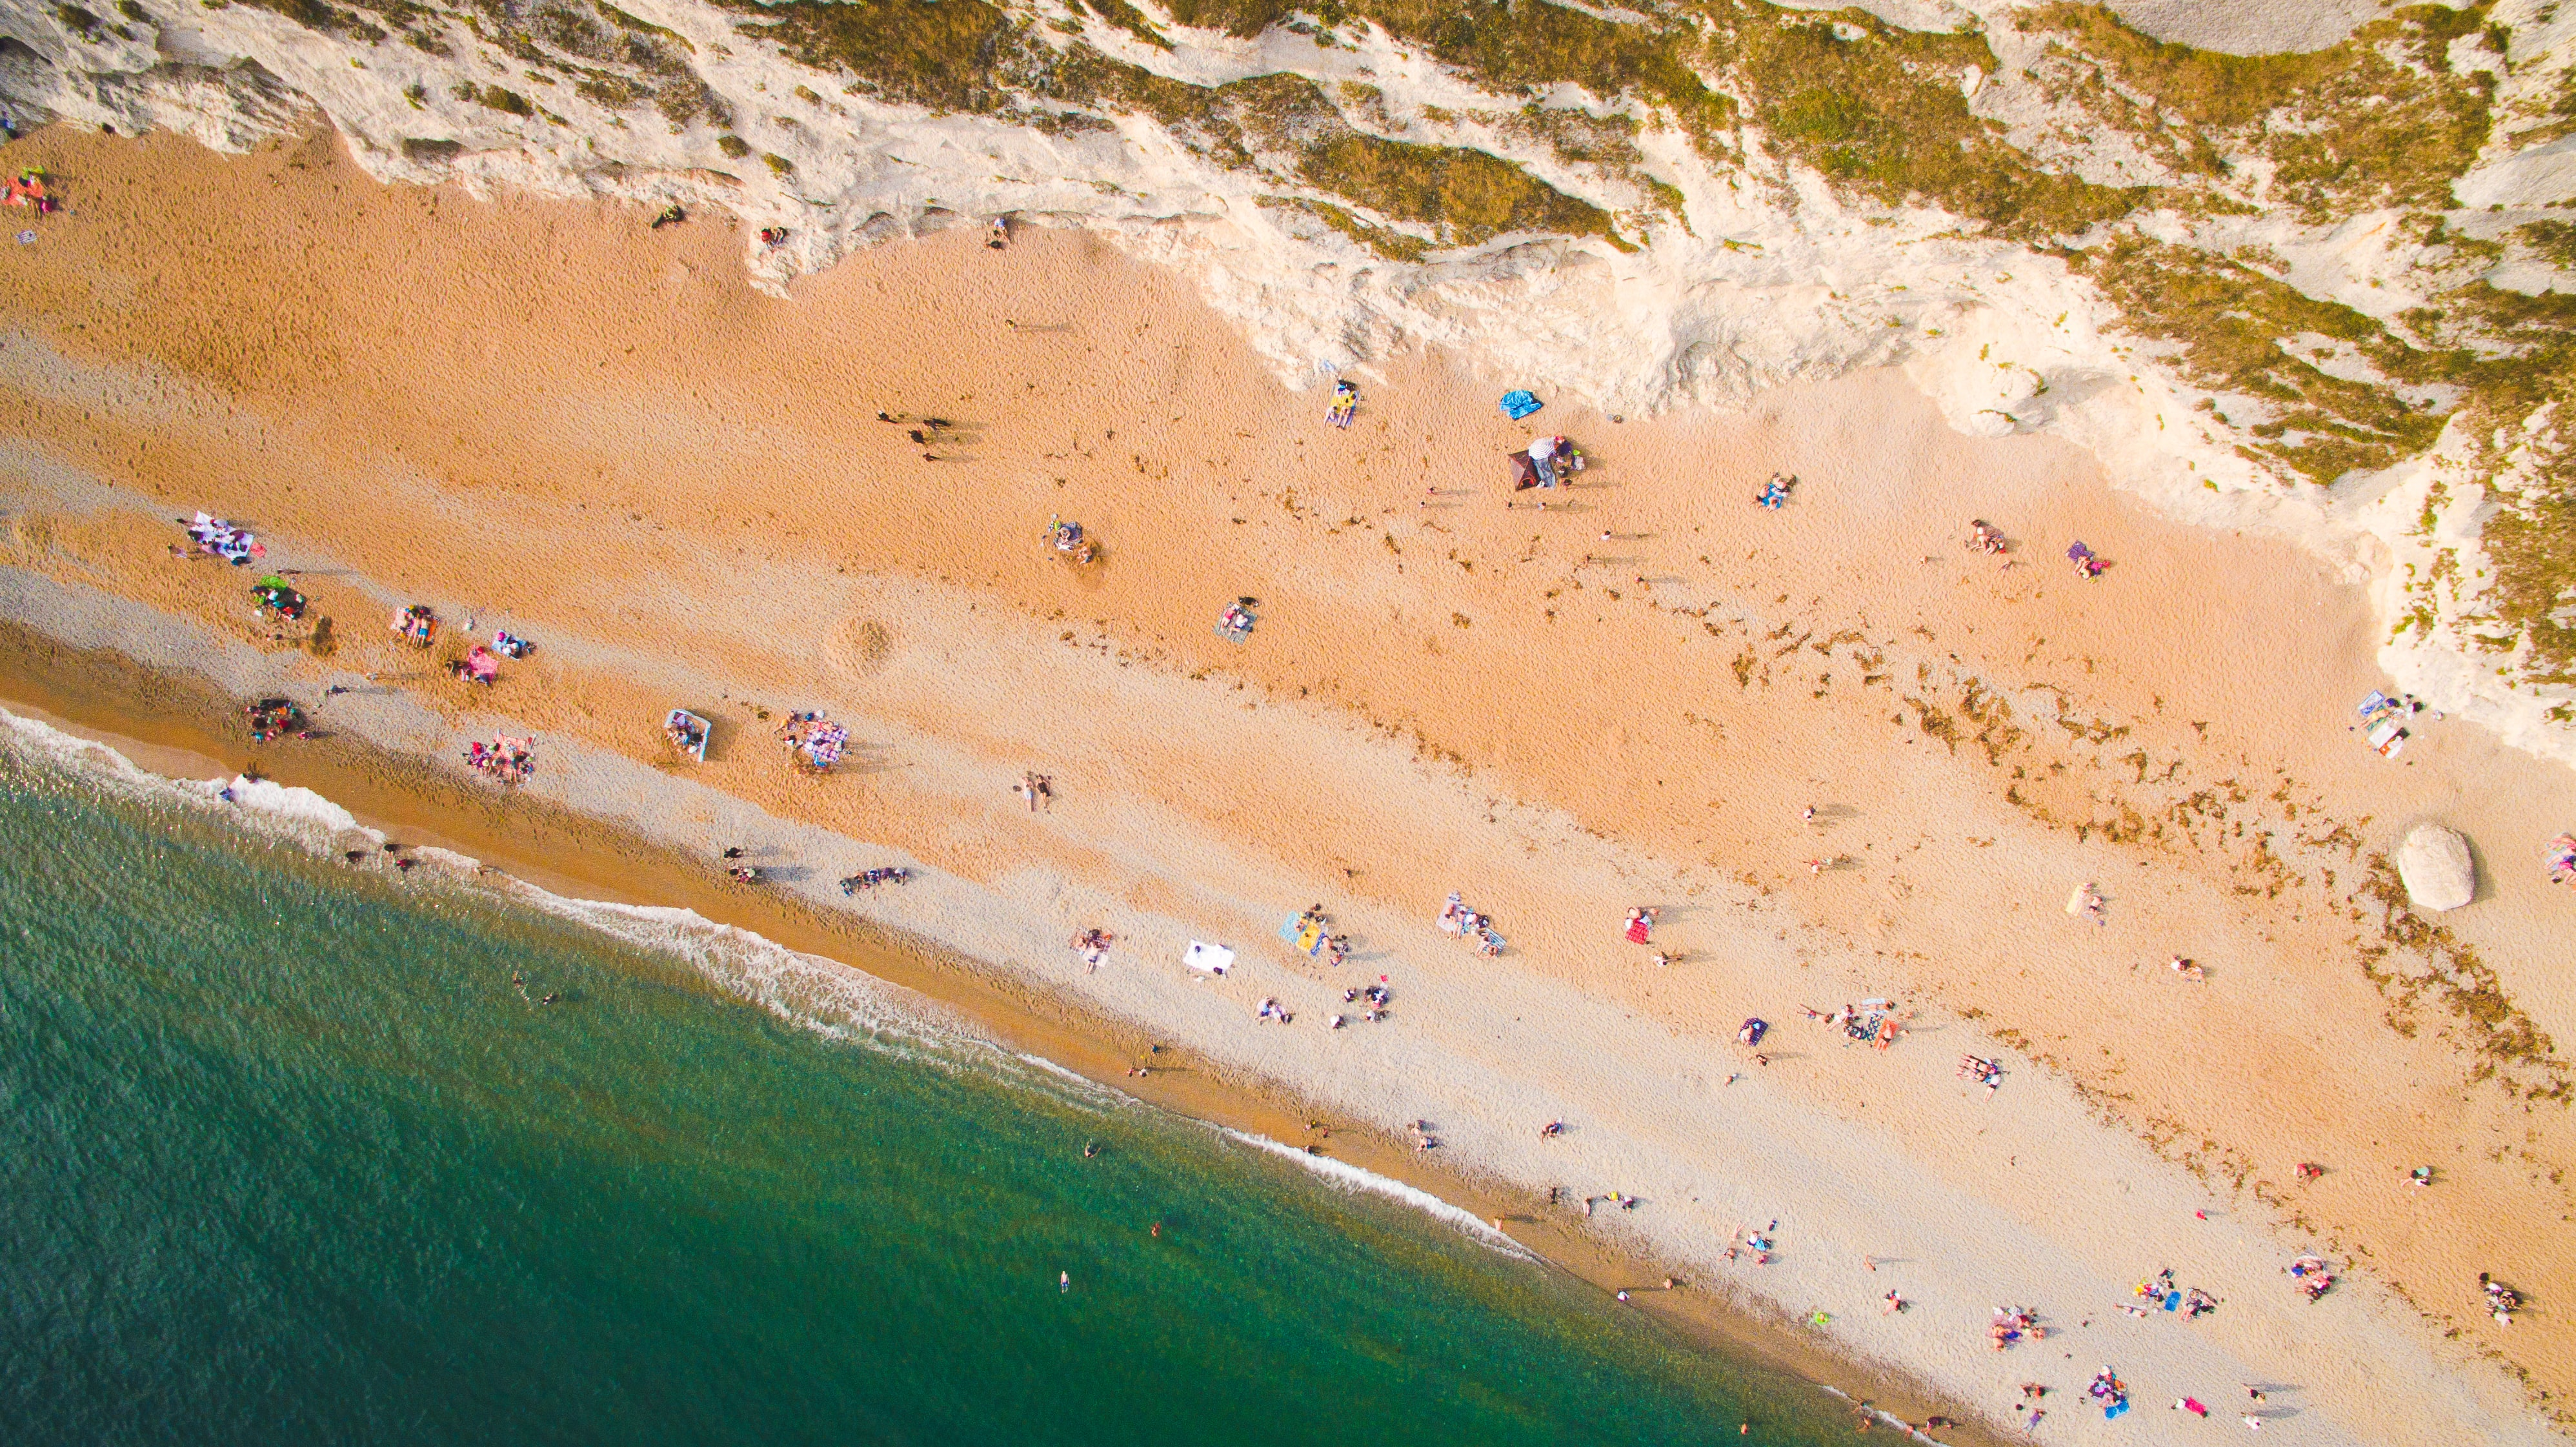 Drone aerial view of a crowded sand beach coastline at Durdle Door